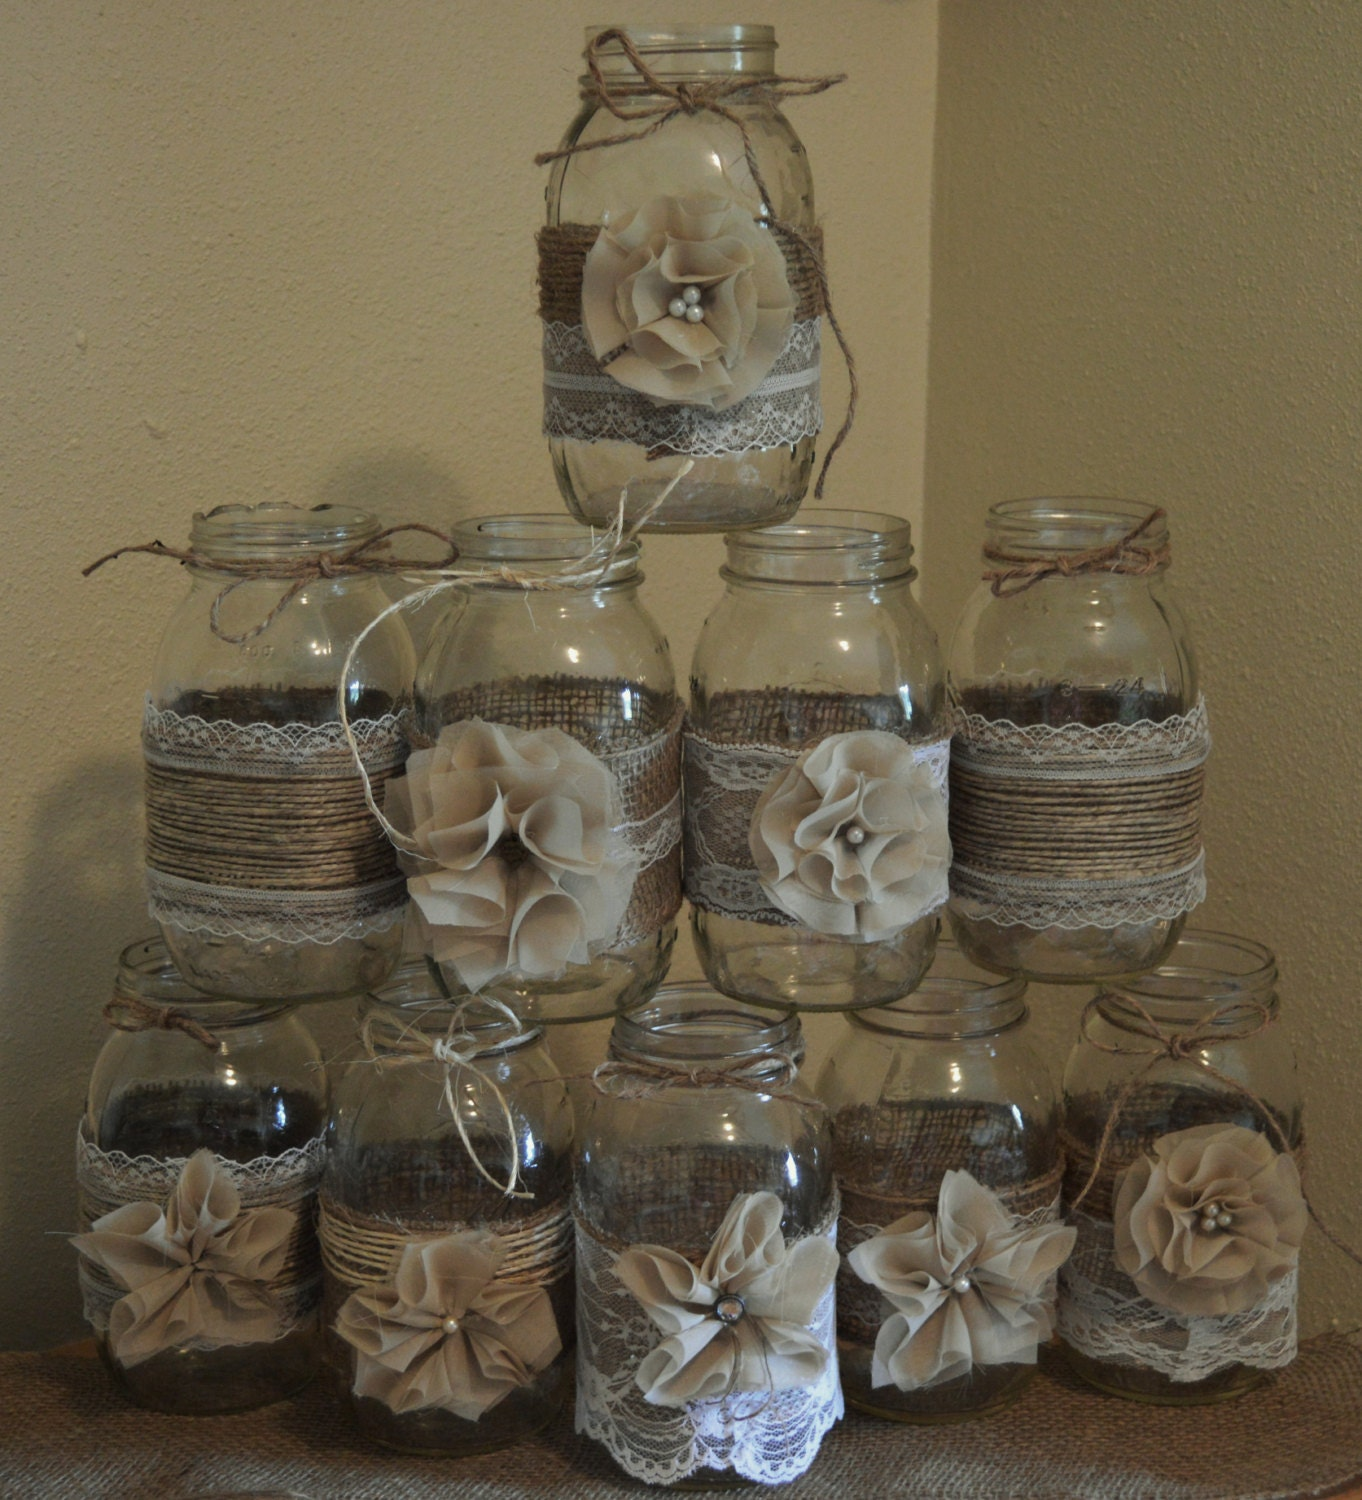 Mason Jar Ideas For Weddings: Set Of 10 Mason Jar Sleeves Burlap Wedding Decorations